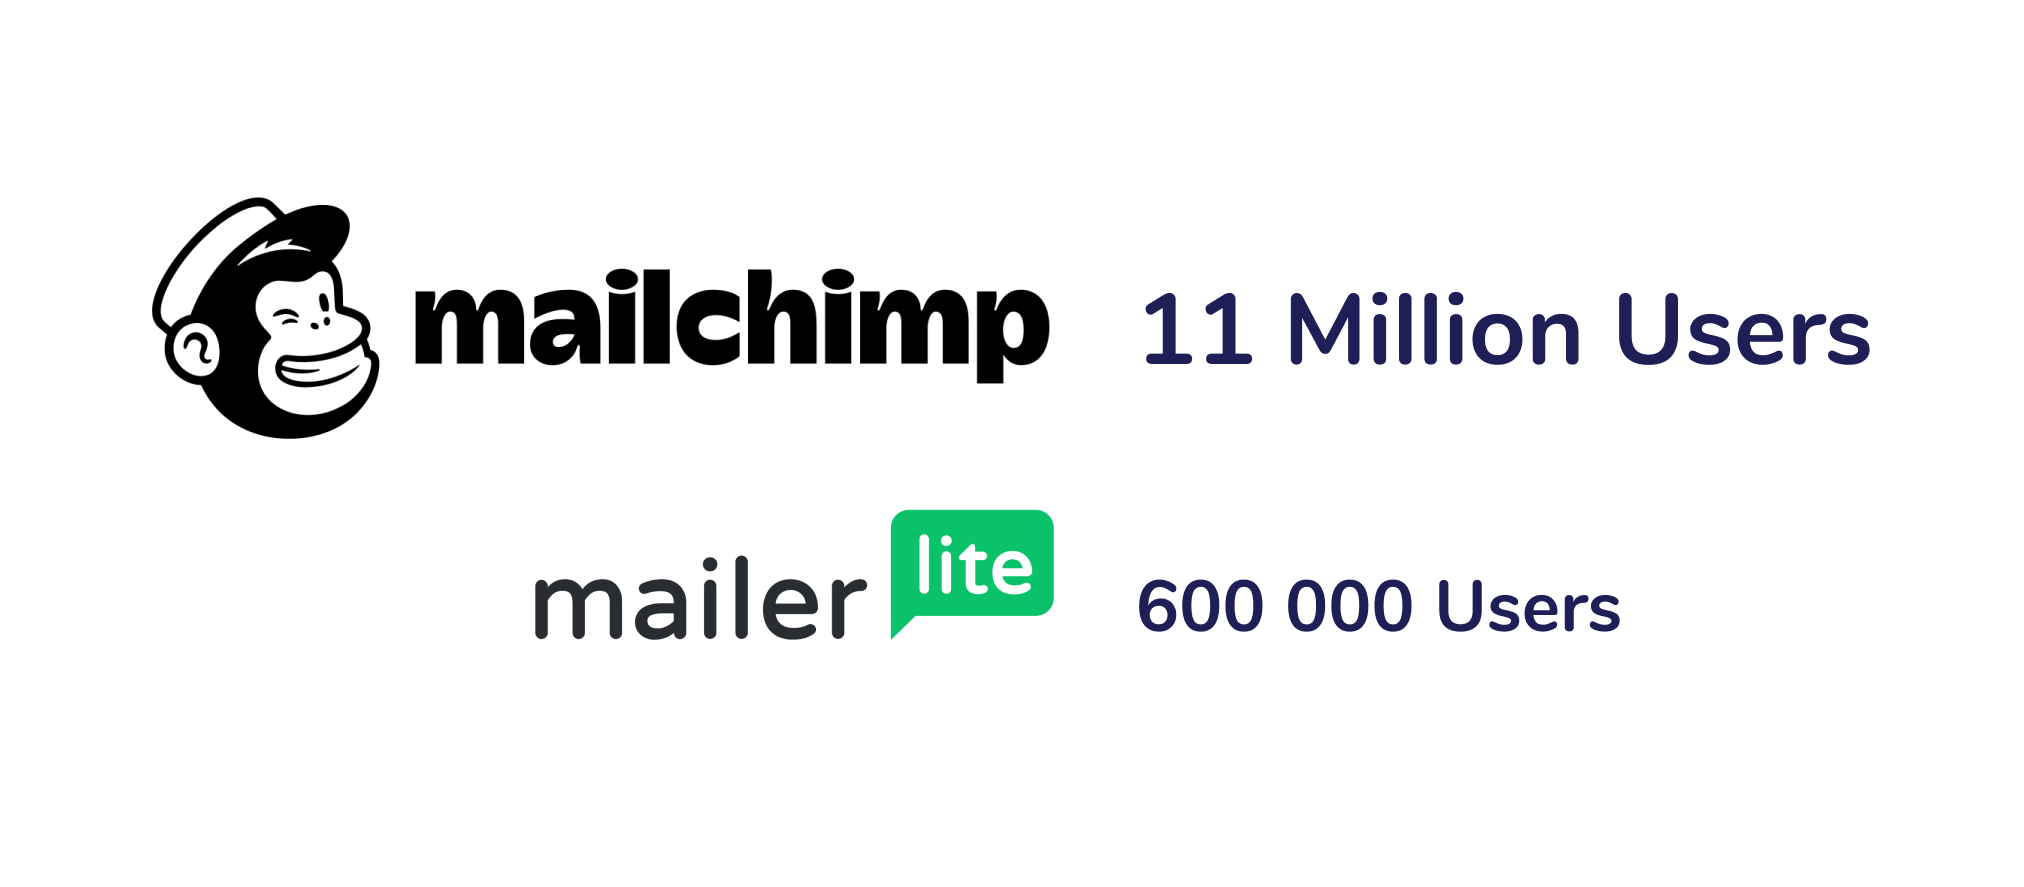 Number of users mailchimp and mailerlite